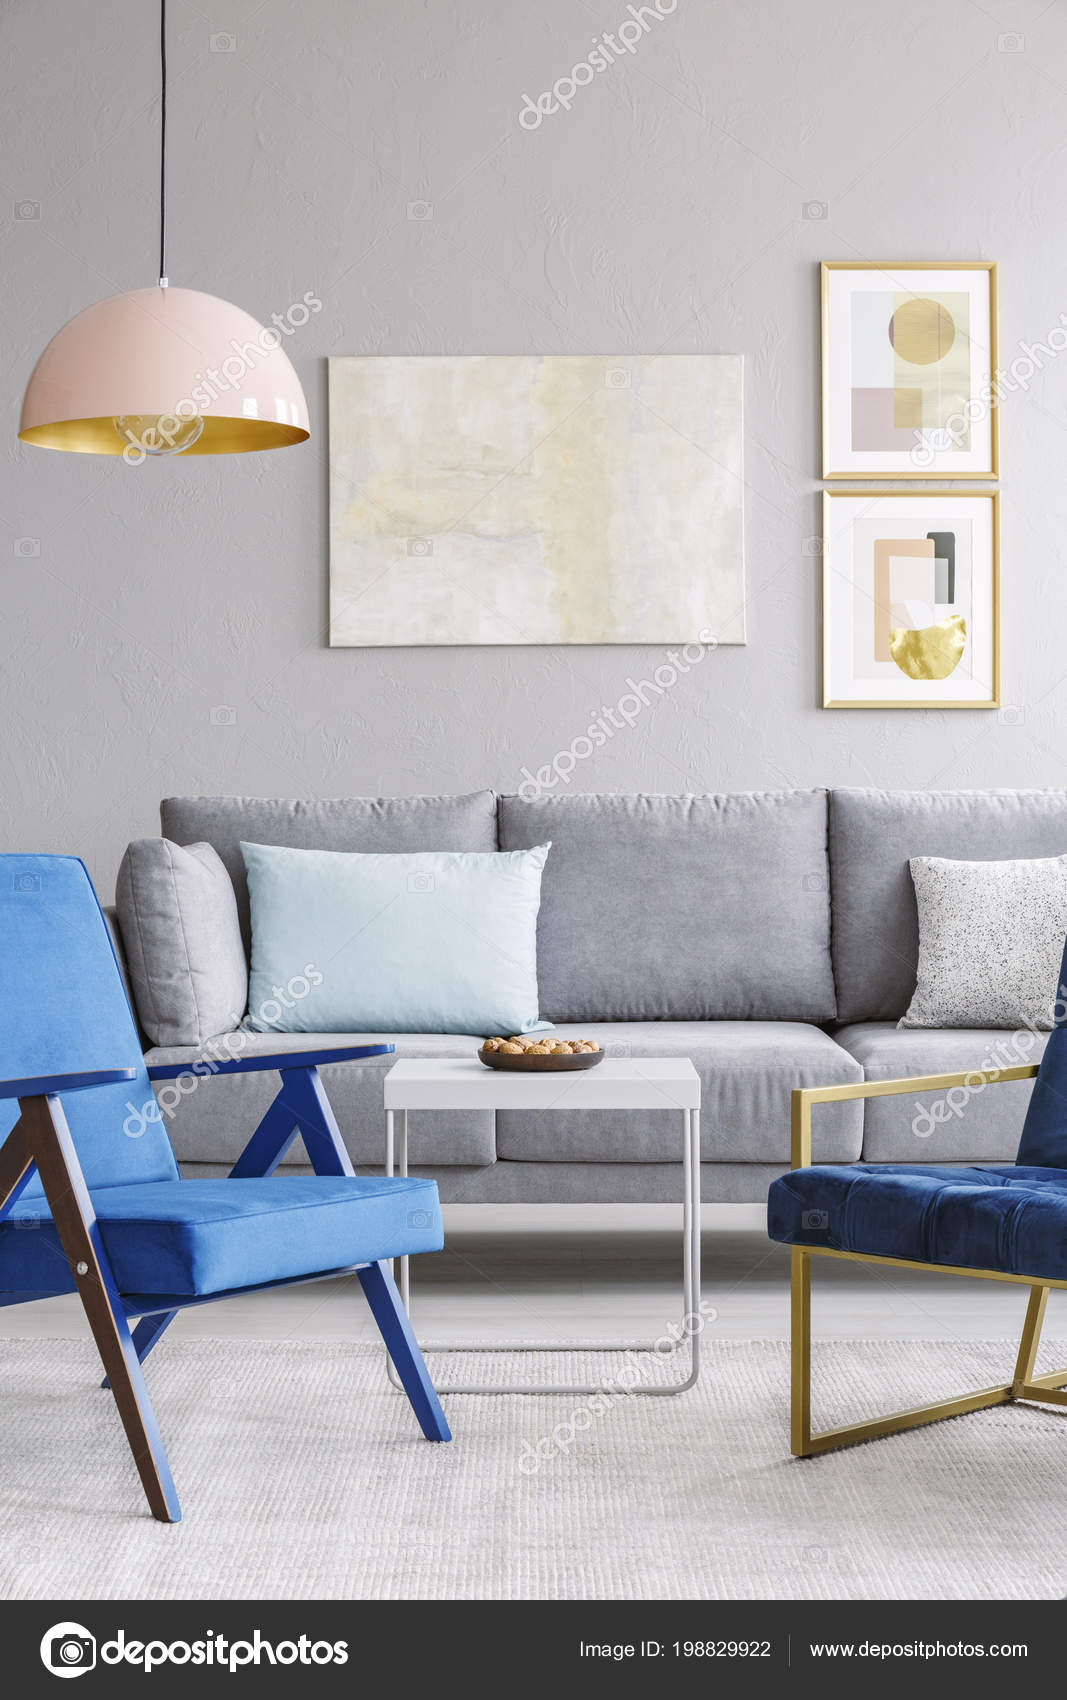 Real Photo Two Blue Chairs Standing Front Grey Couch Elegant — Stock ...